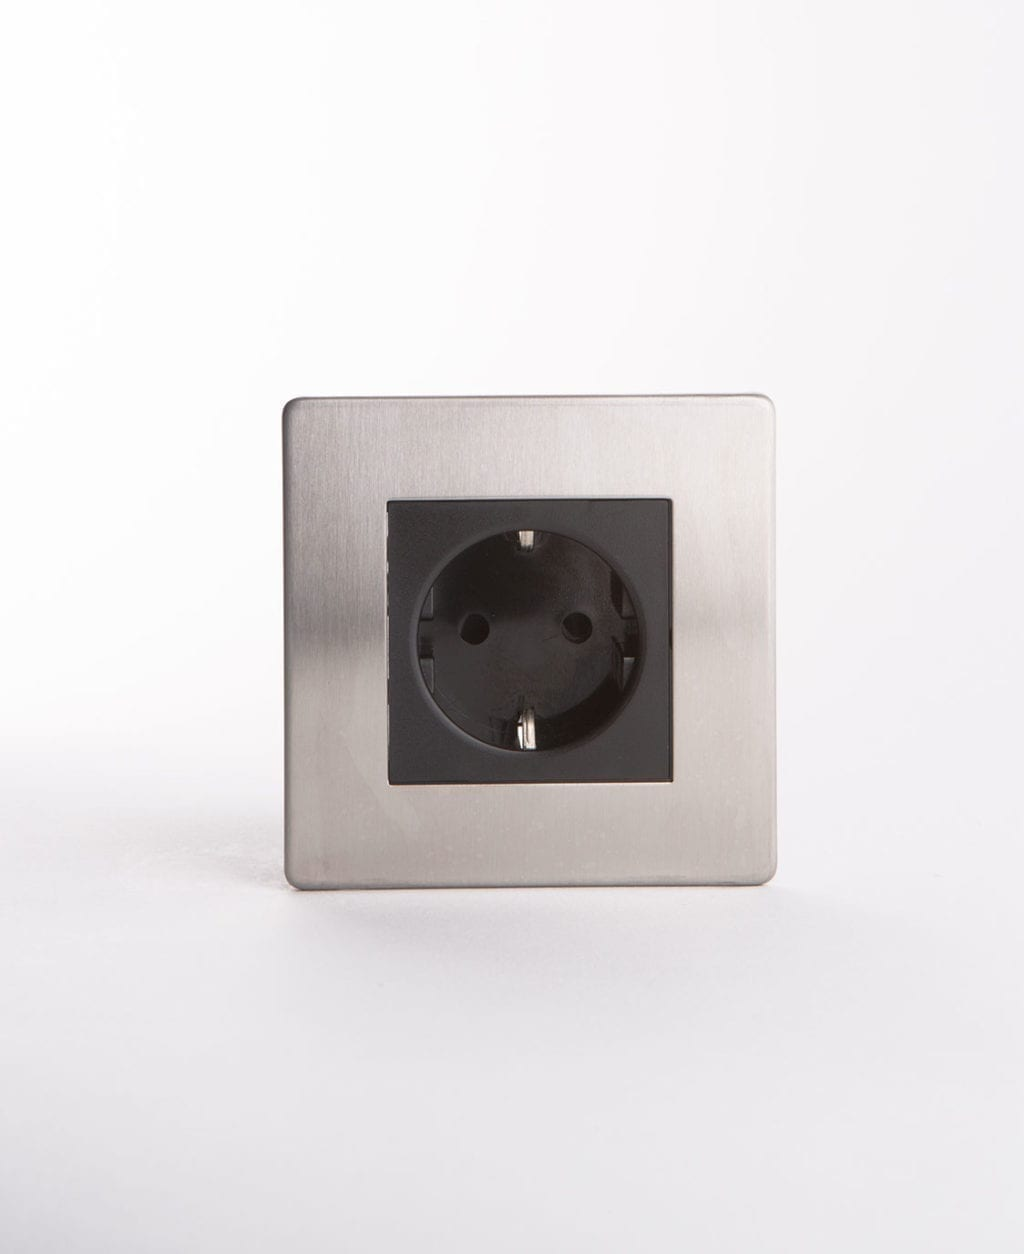 Schuko single socket silver with black inserts